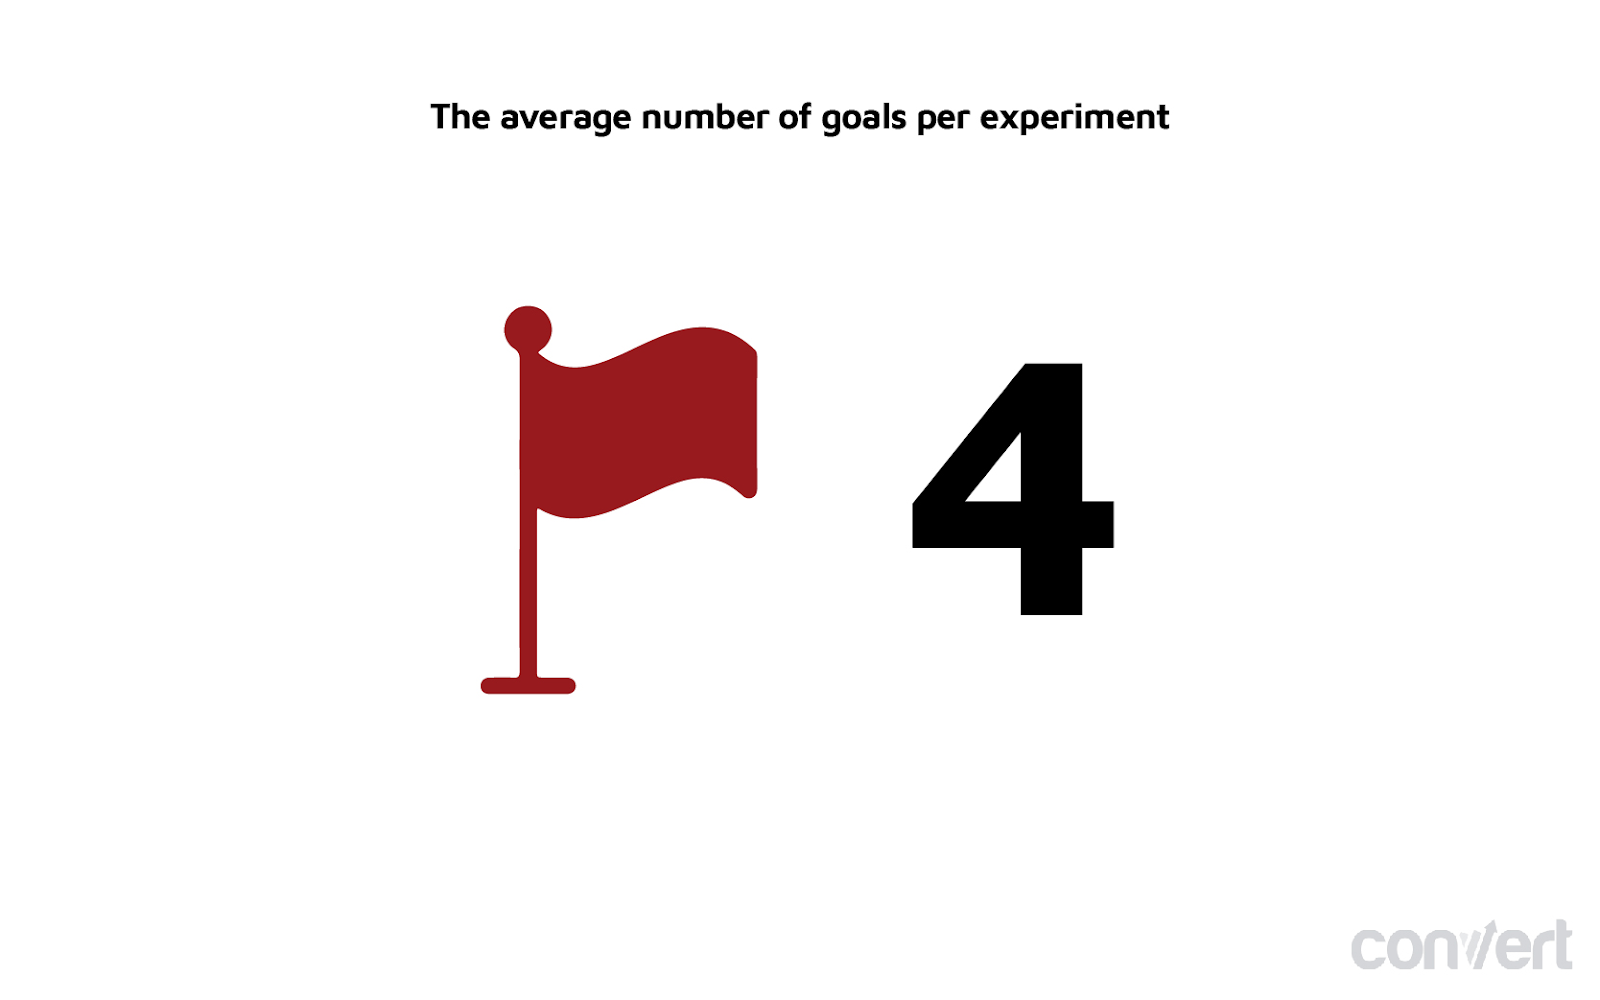 5 Things We Learned from Analyzing 28,304 Experiments